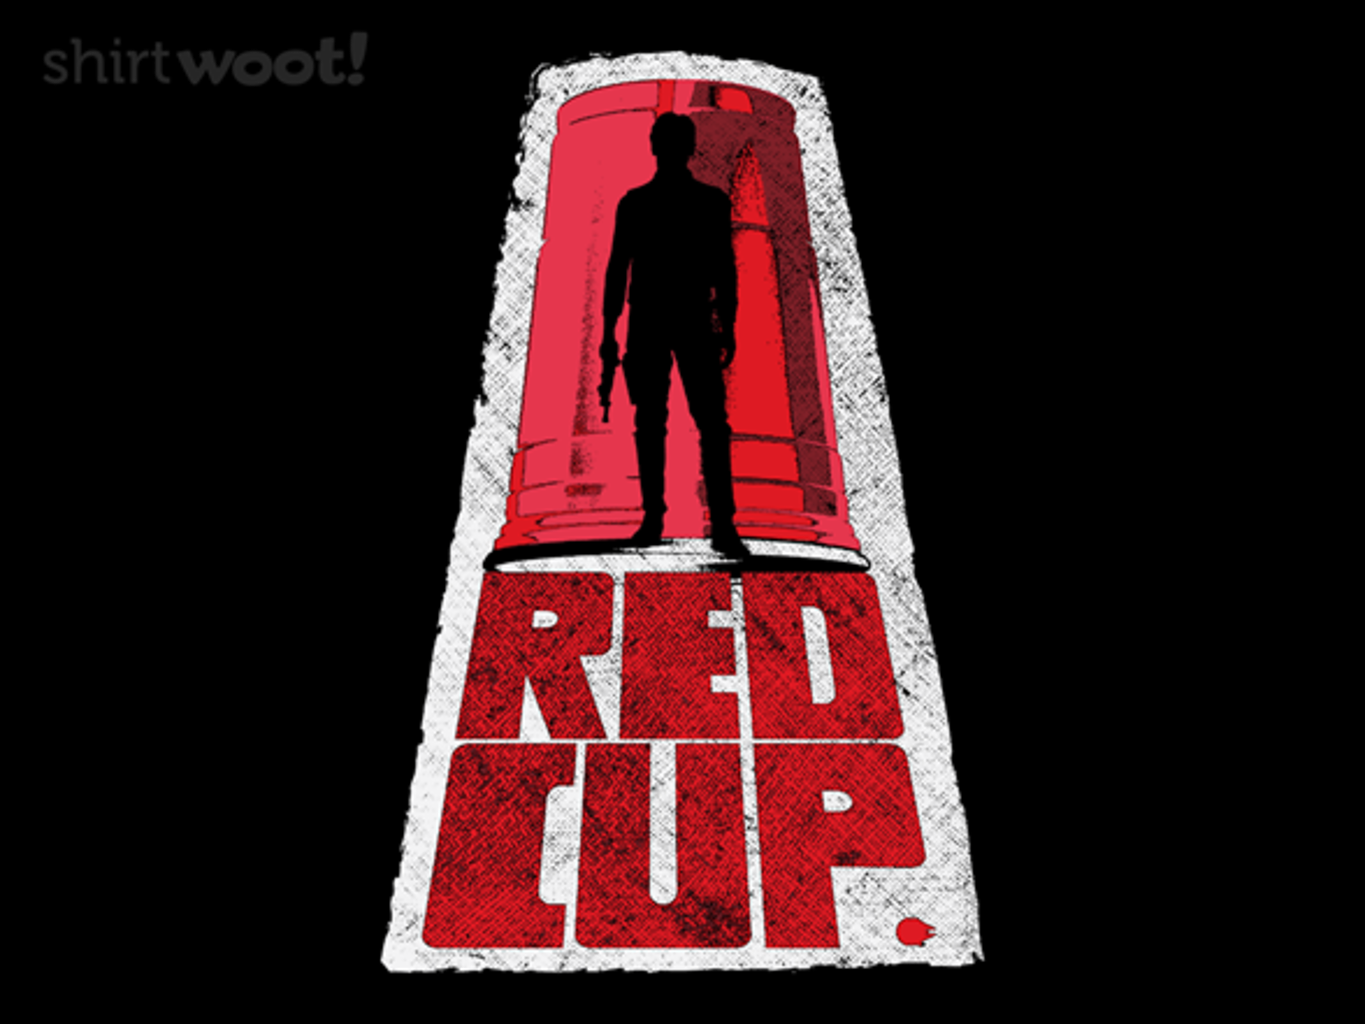 Woot!: Red Cup - $15.00 + Free shipping